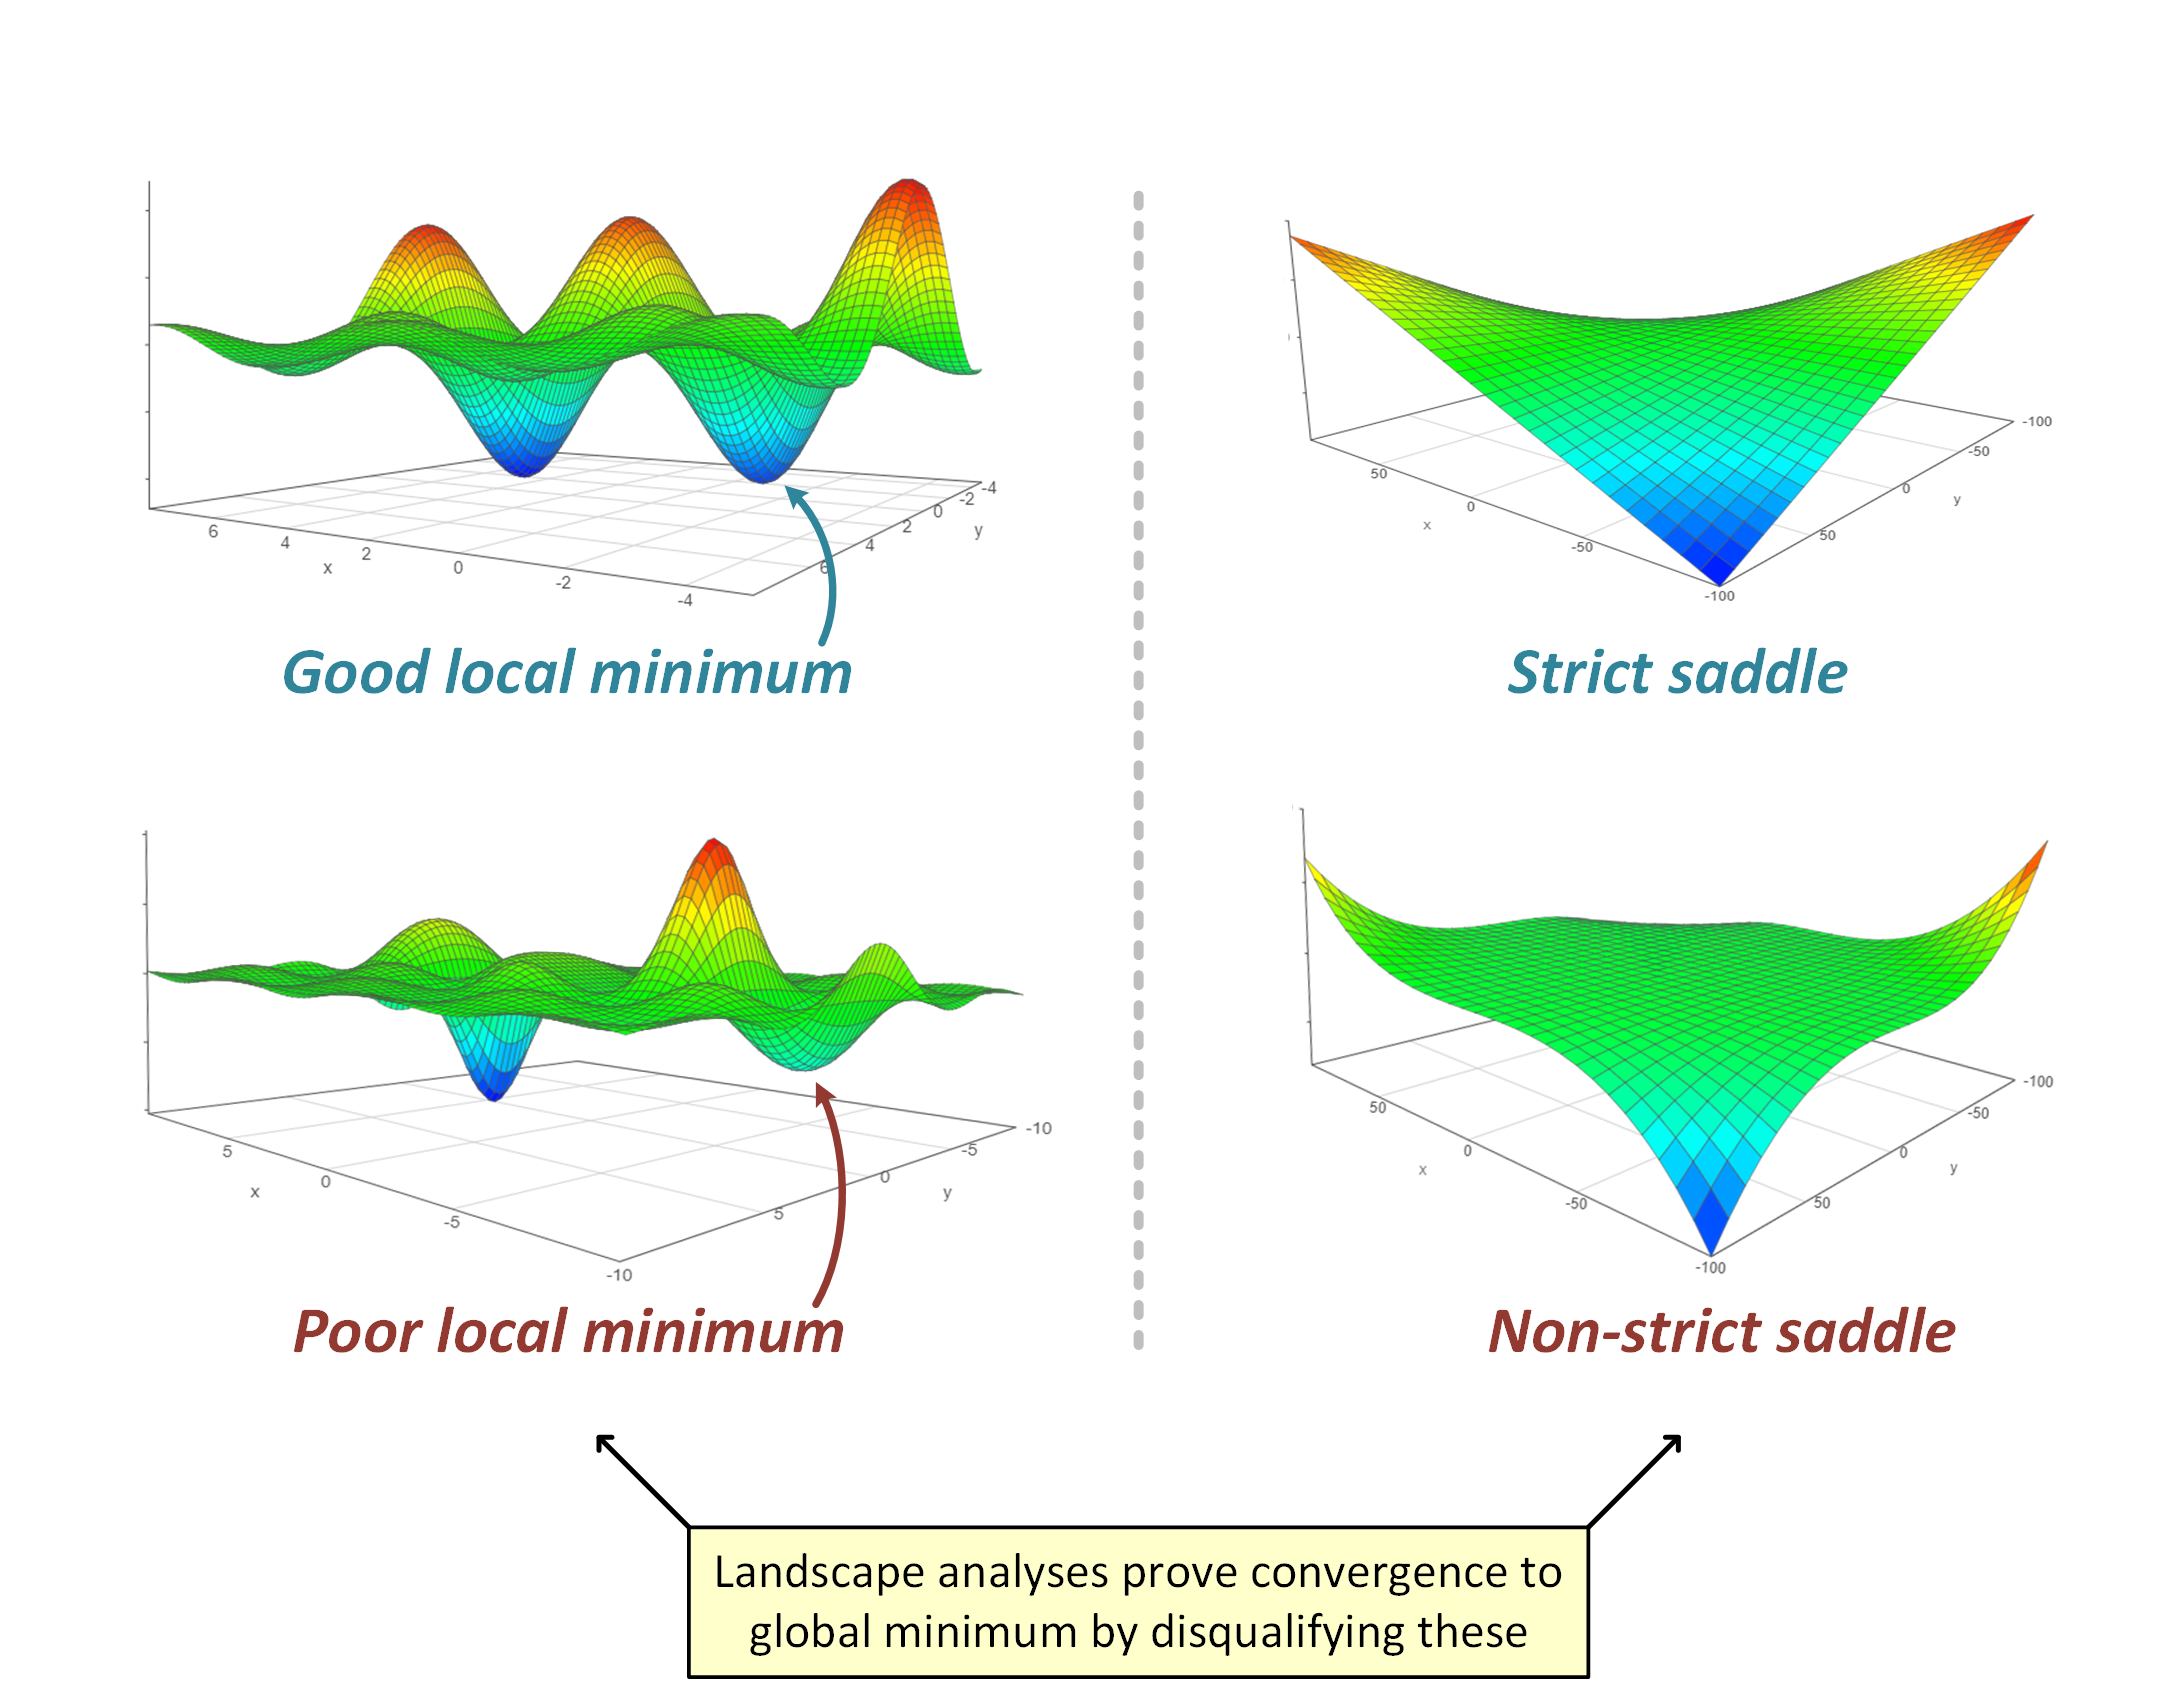 Local minima and saddle points